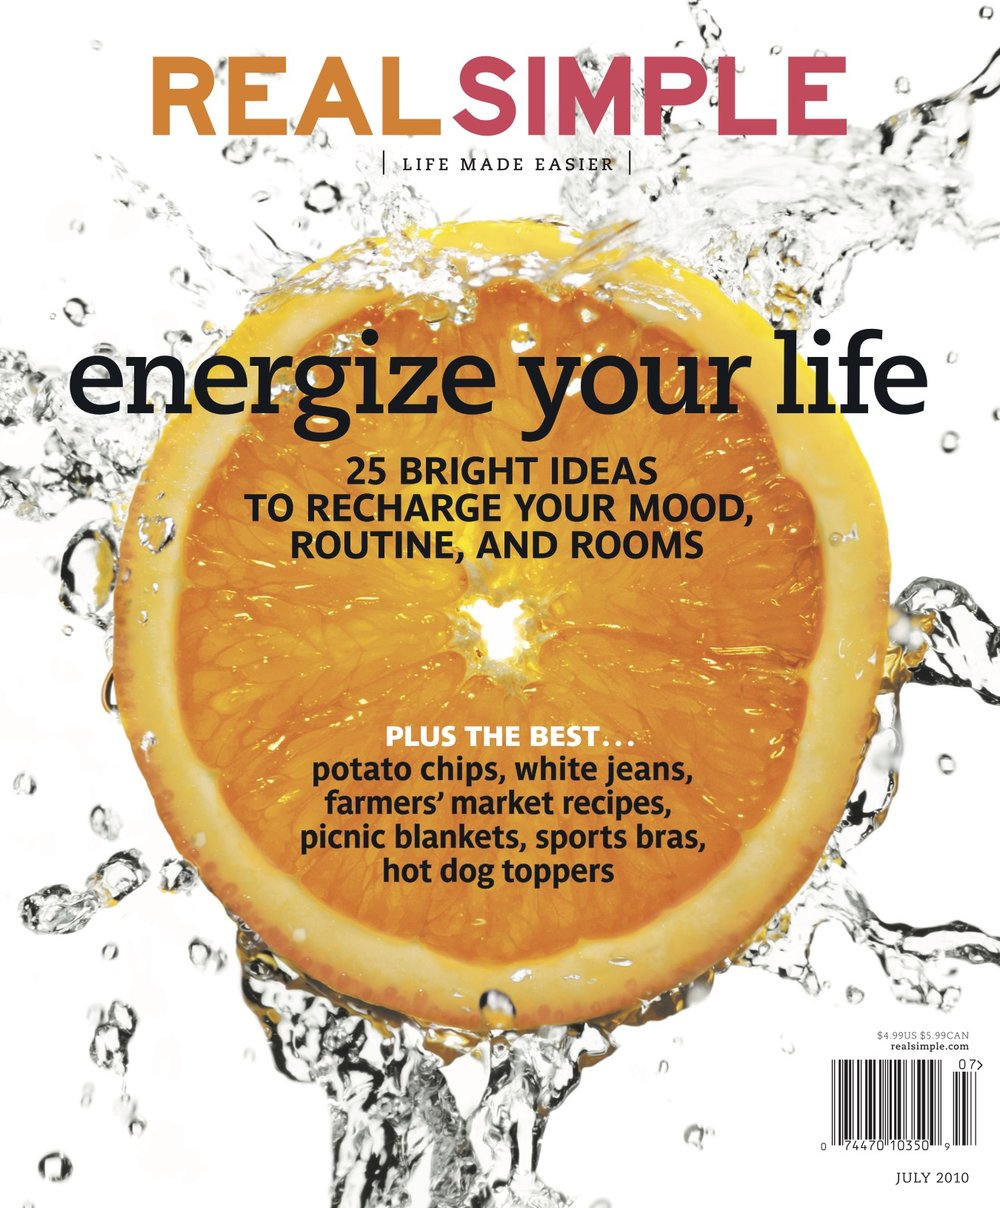 Energize Cover:Lewis.jpg